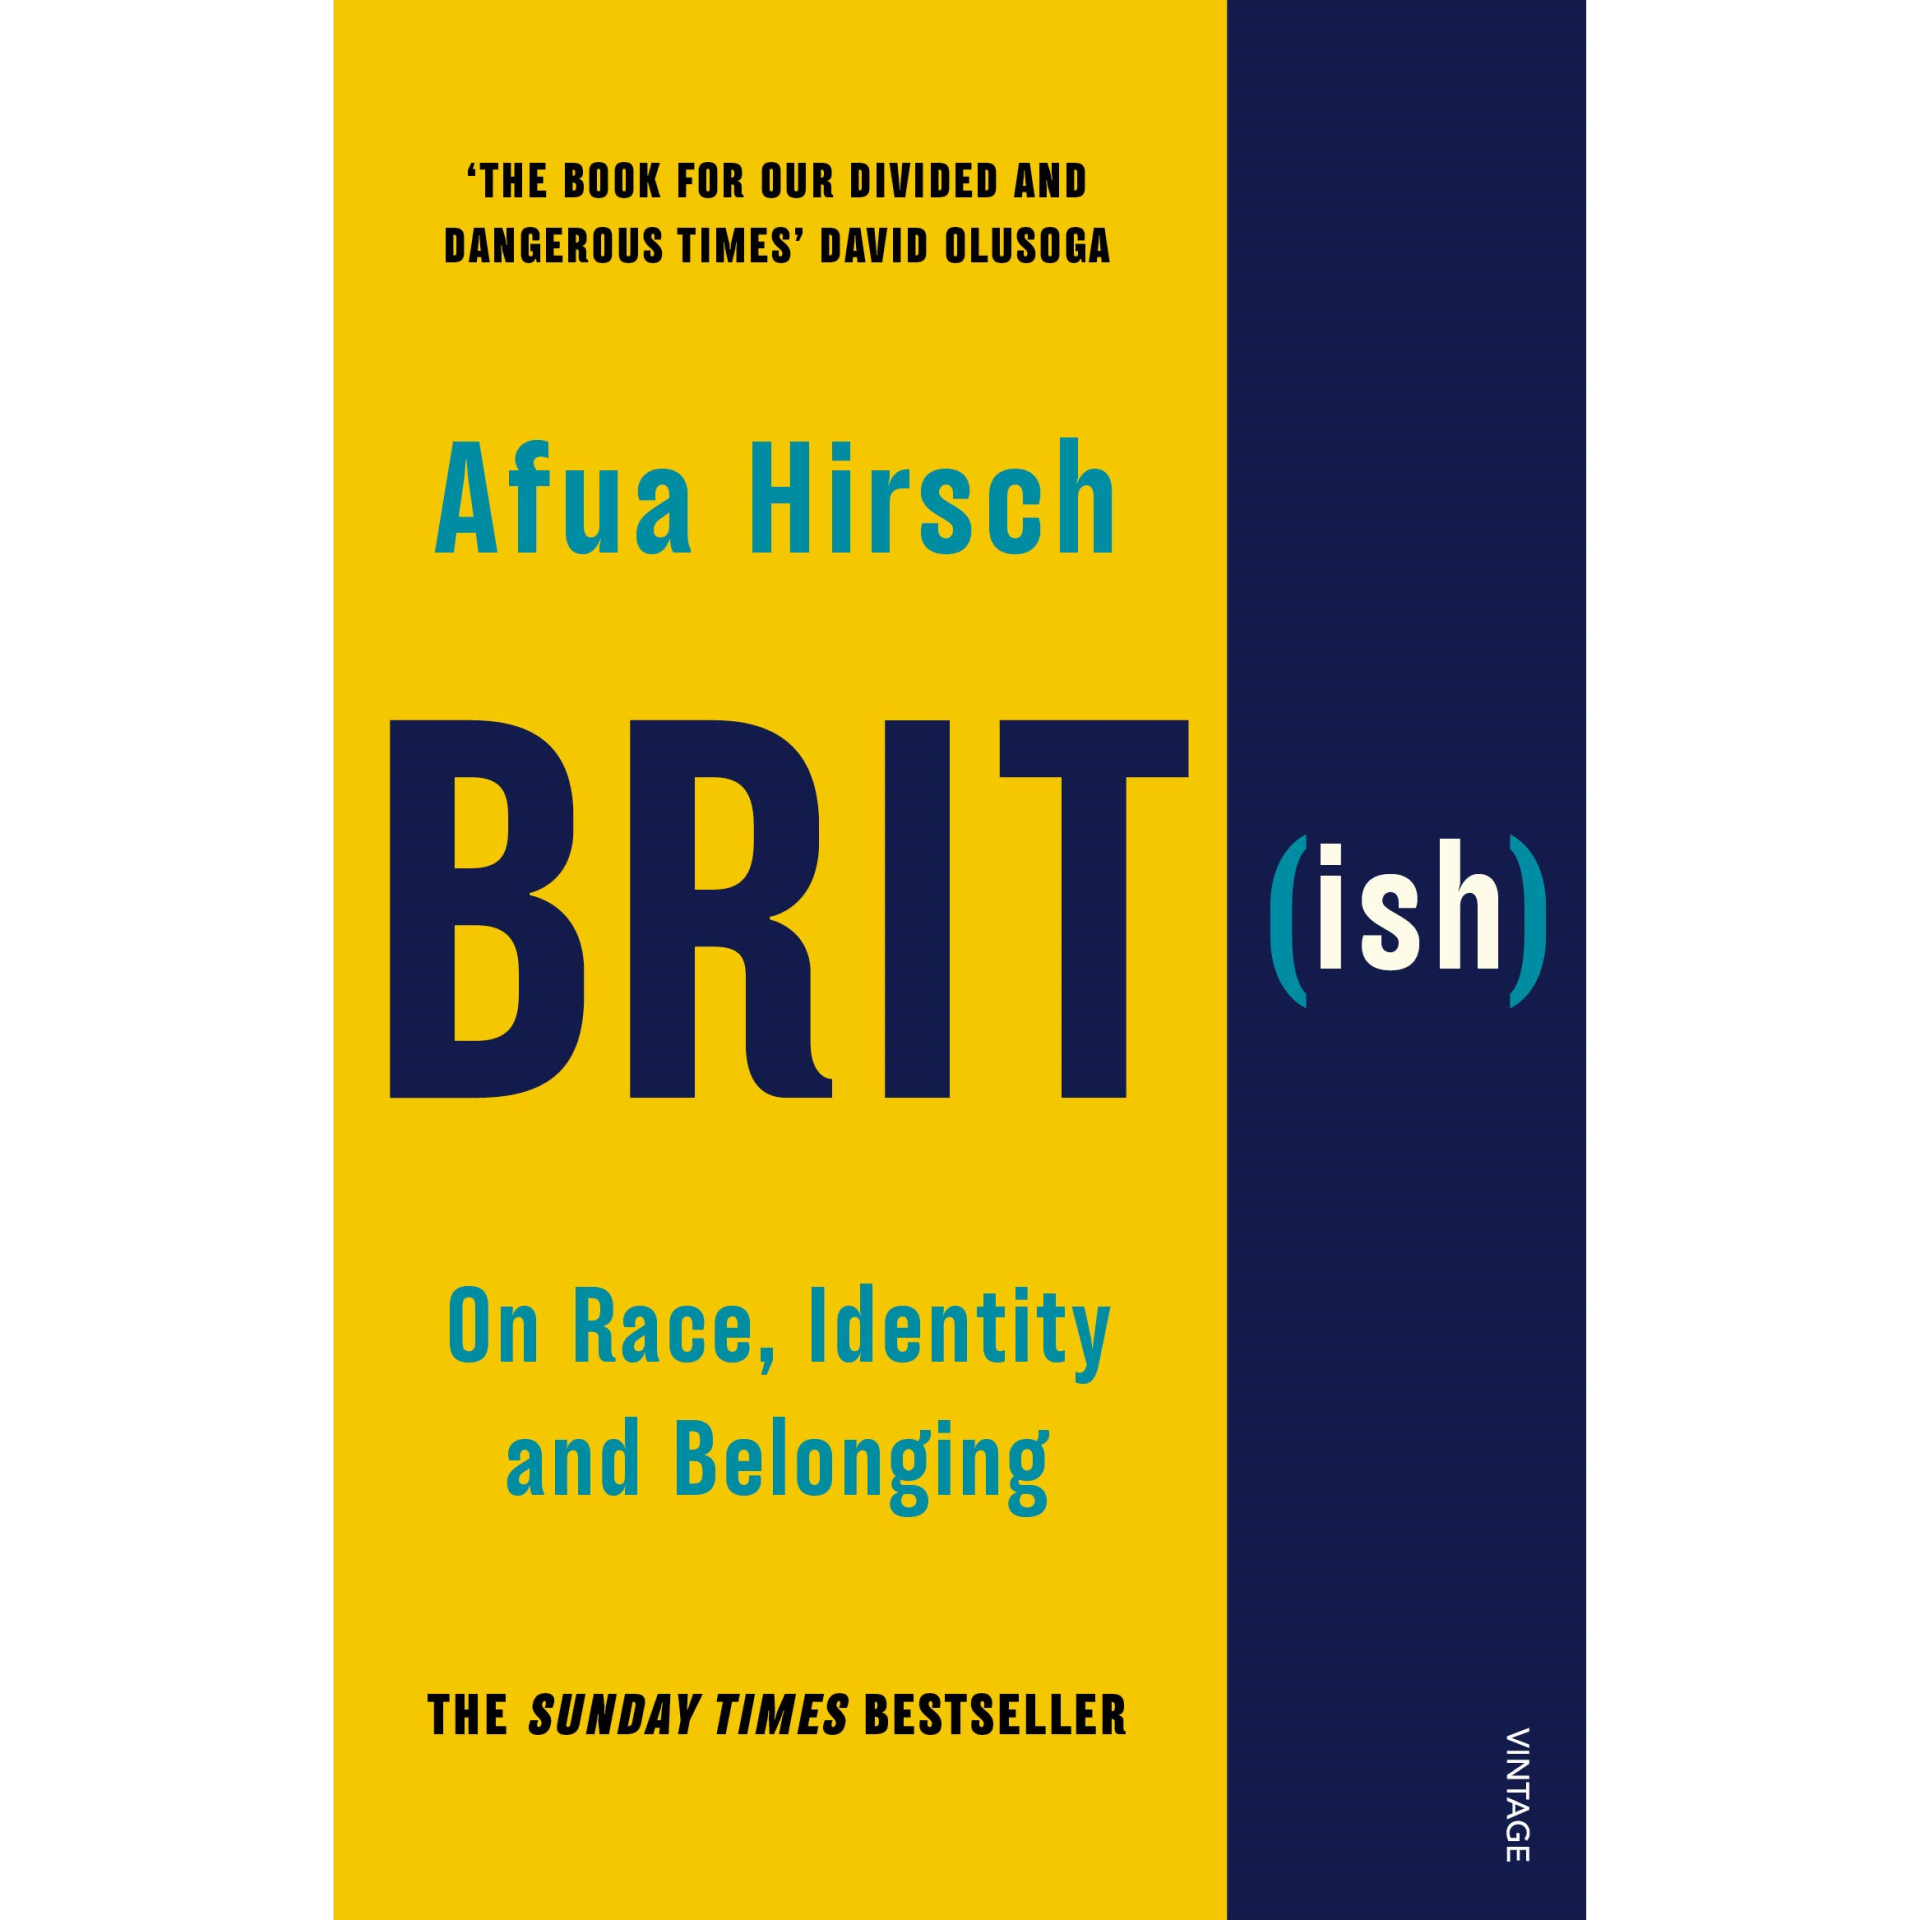 Book: Brit(ish) On Race, Identity and Belonging by Afua Hirsch